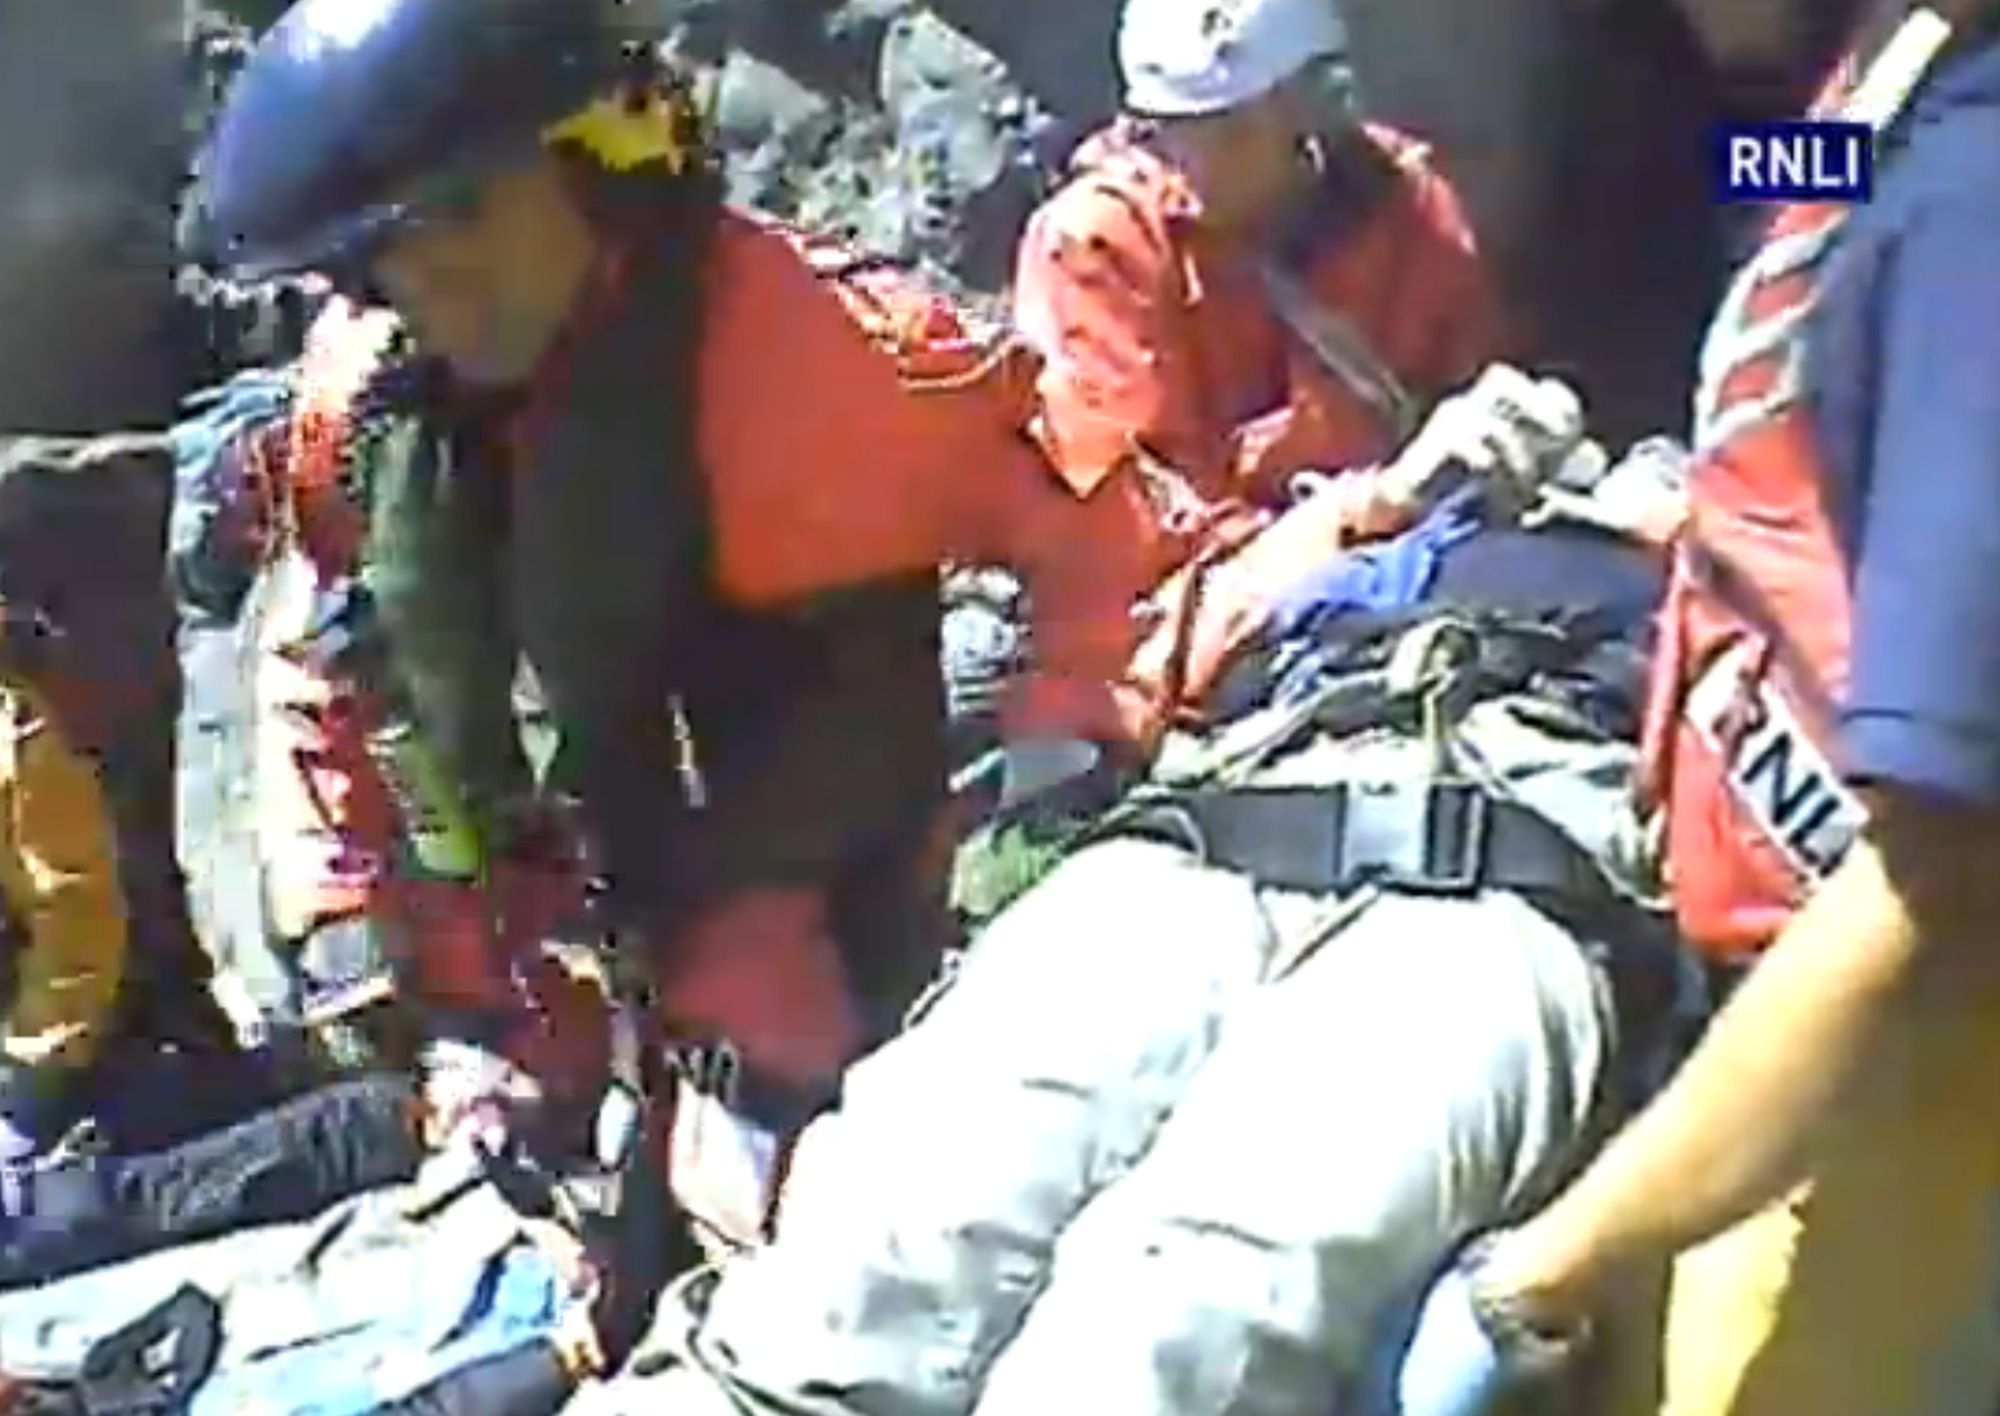 WITH VIDEO: Watch the dramatic moment RNLI crew and coastguards rescue a fallen climber at Swanage.